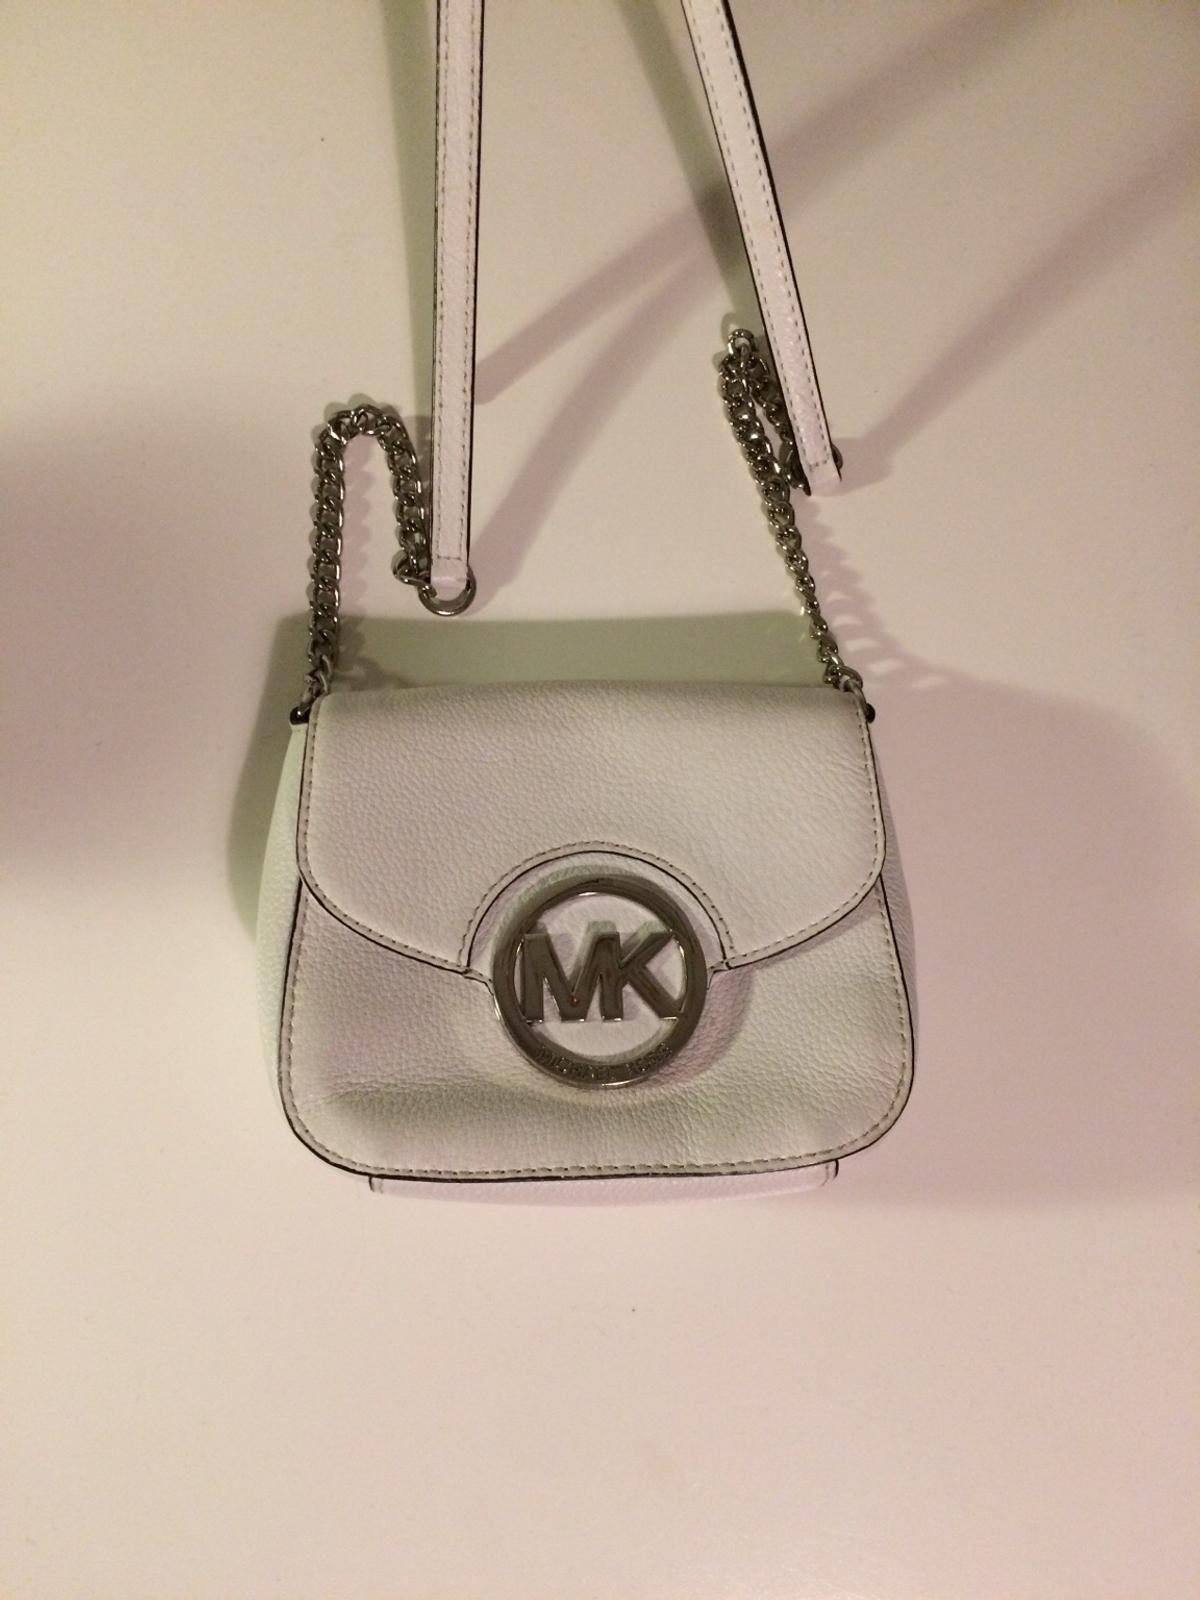 7e74d8c5 Michael Kors veske in 5115 Åsane for NOK 650.00 for sale - Shpock